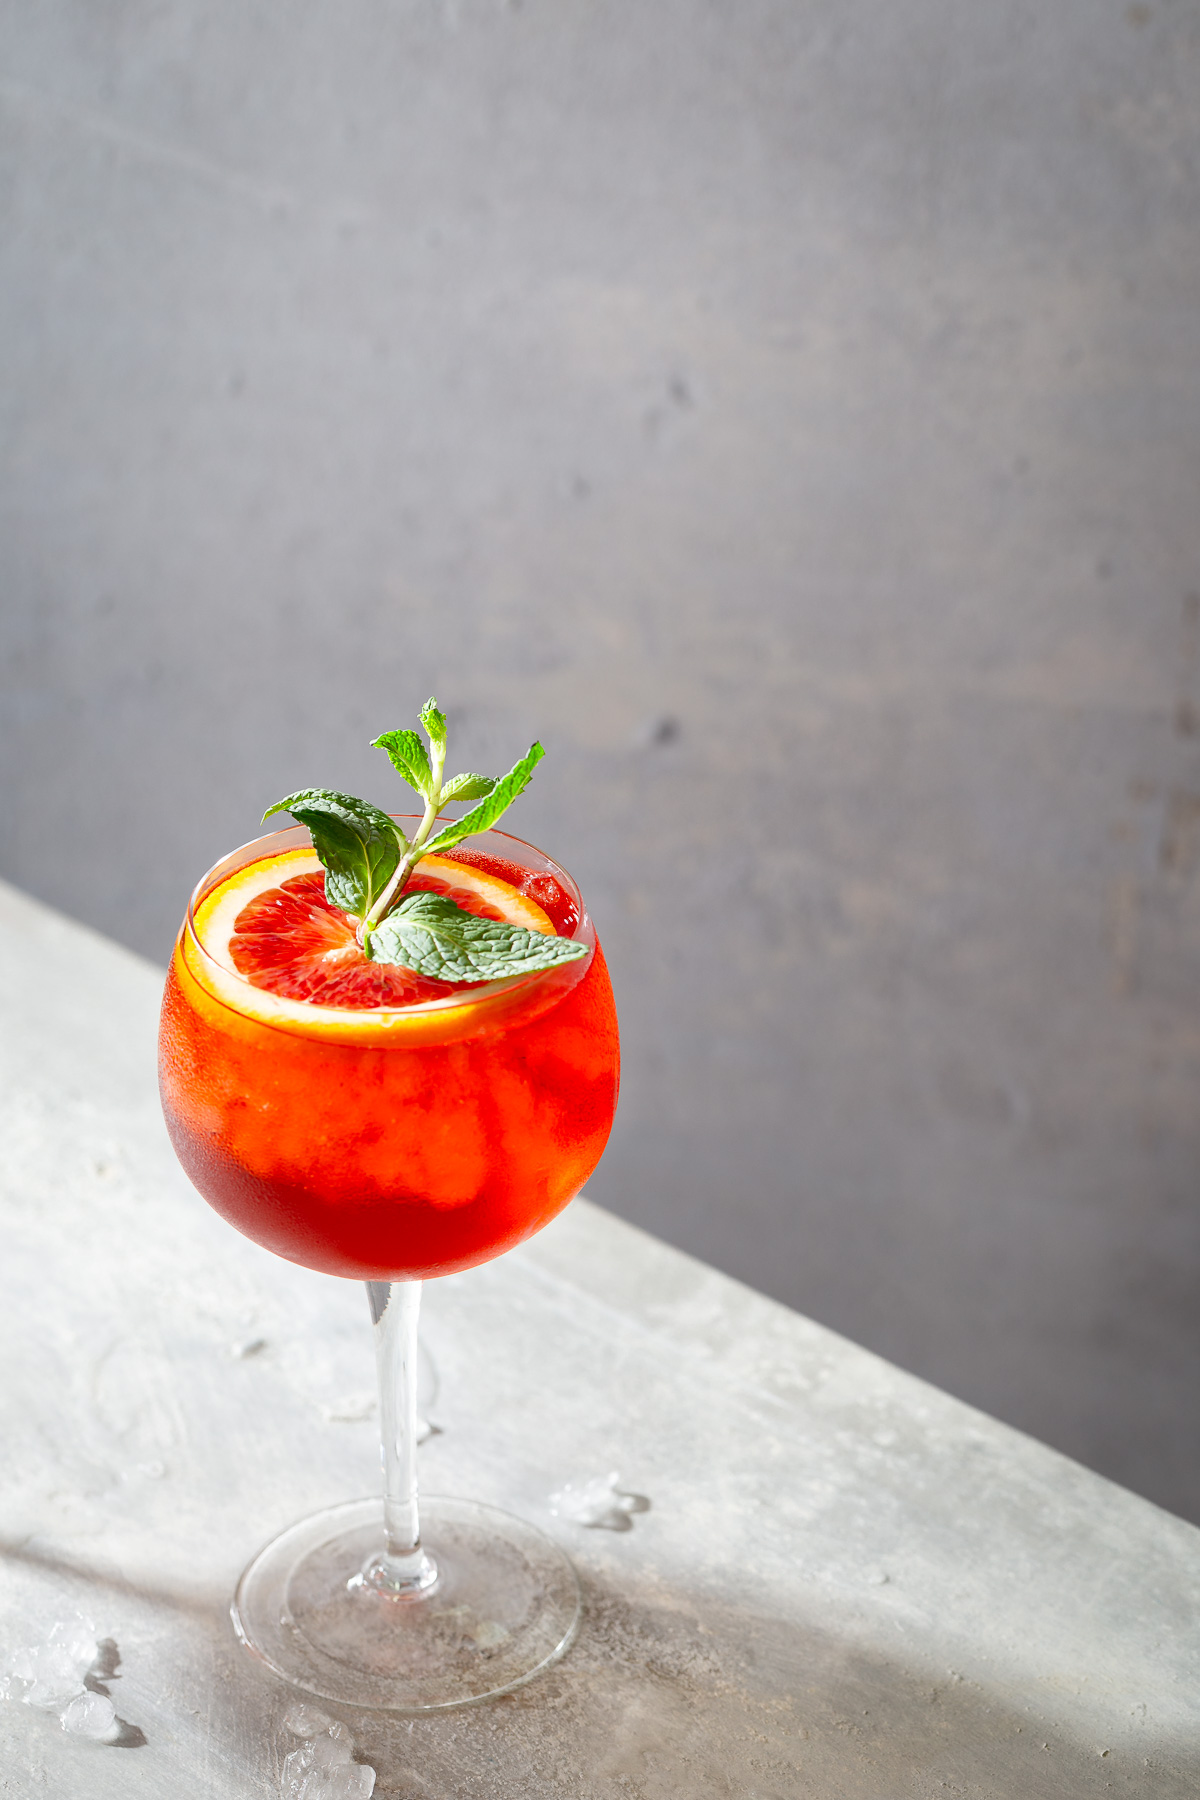 Lambrusco spritz cocktail in a wine glass and garnished with orange slices and mint sprigs.